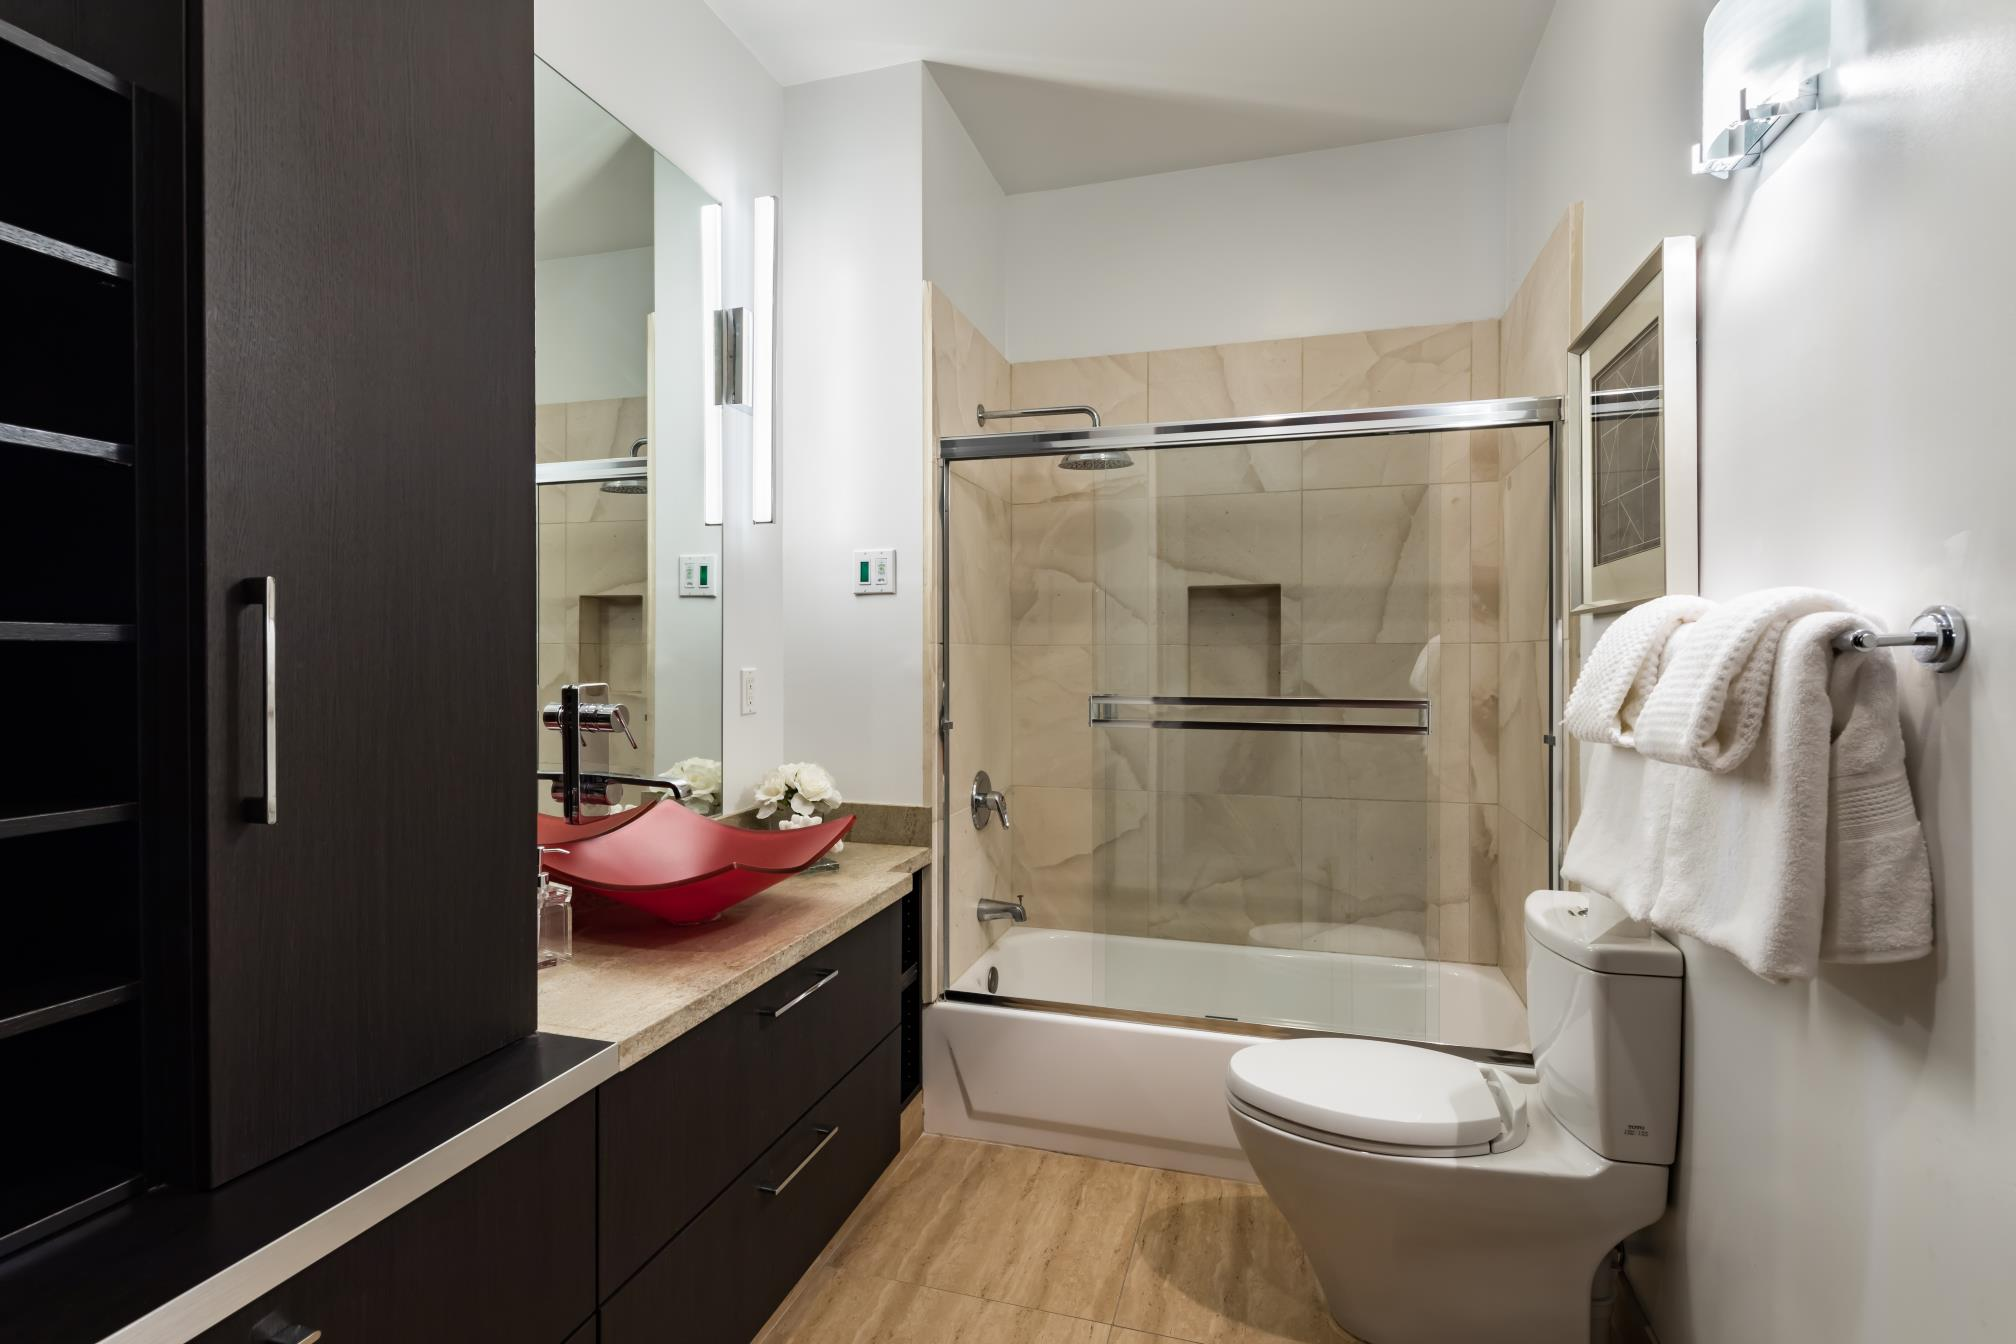 Modern bath room, architect work, Los Altos